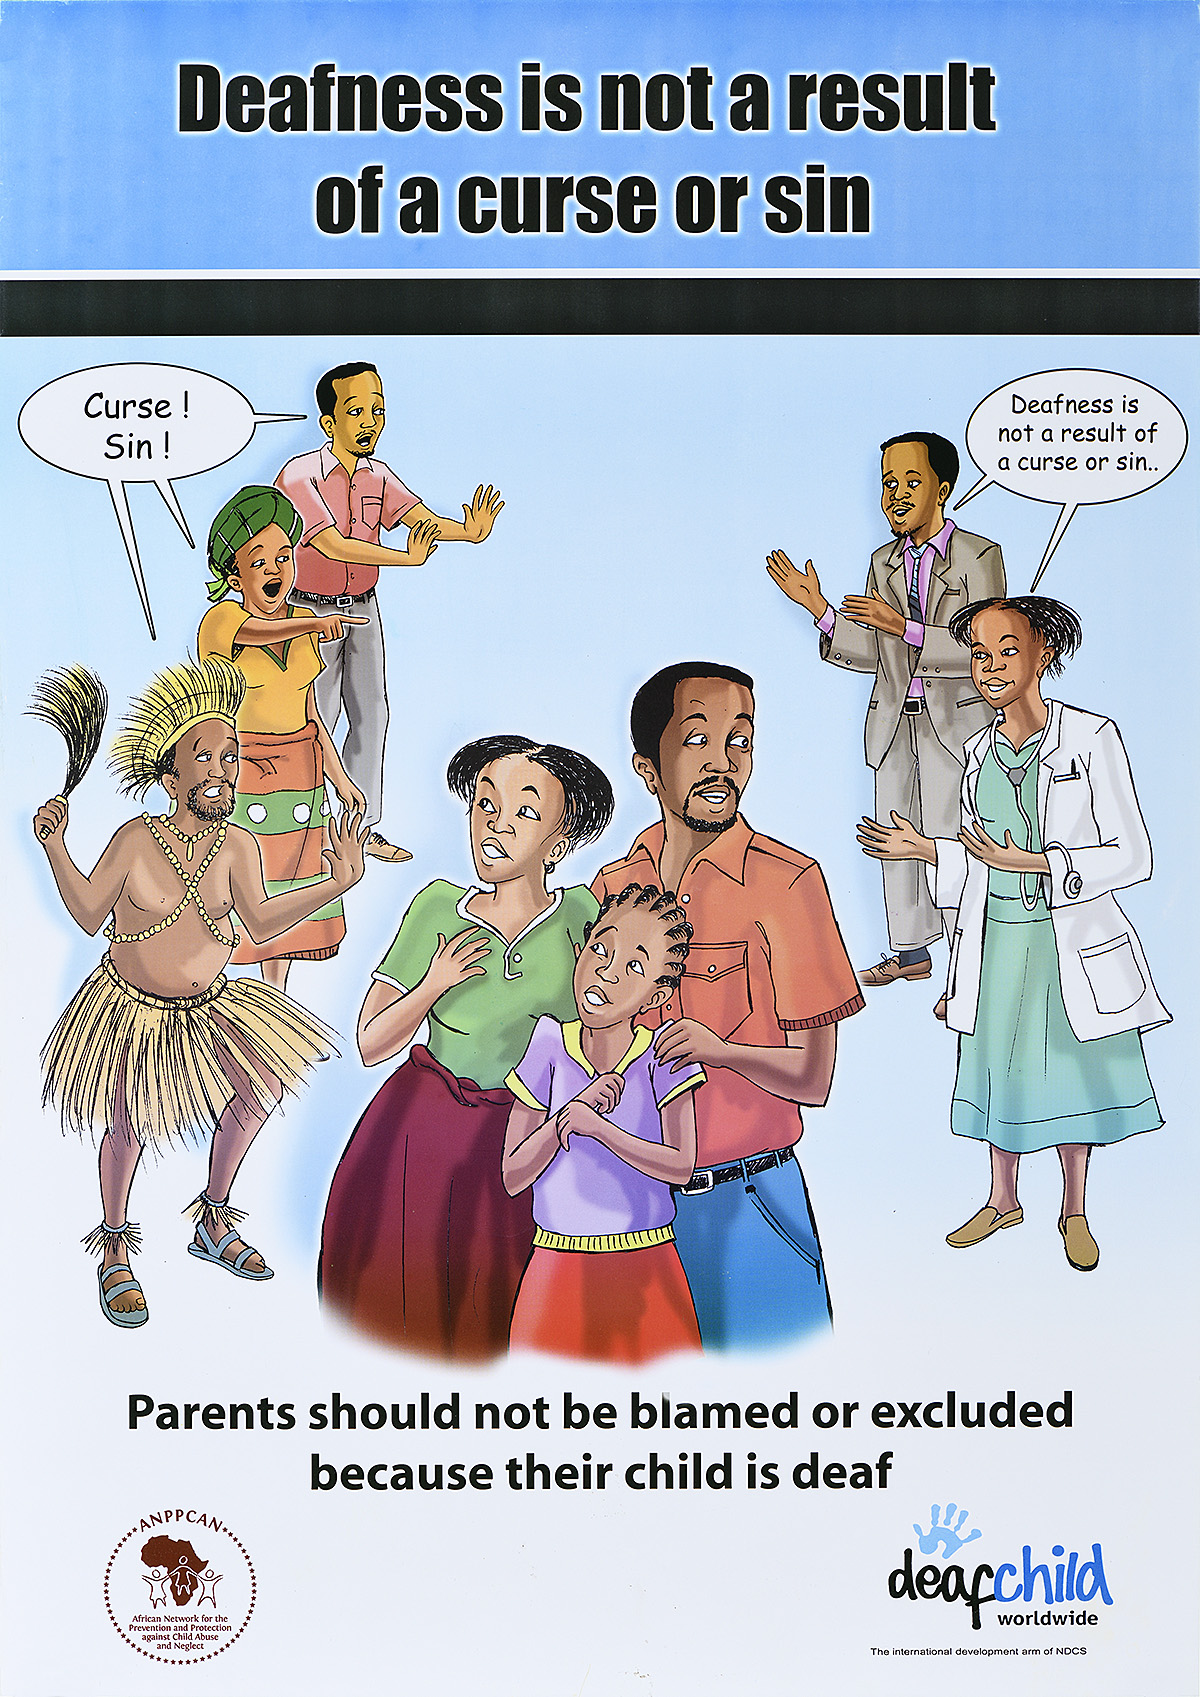 illustrative PSA poster of people expressing different views along with the text deafness is not a result of a curse or sin